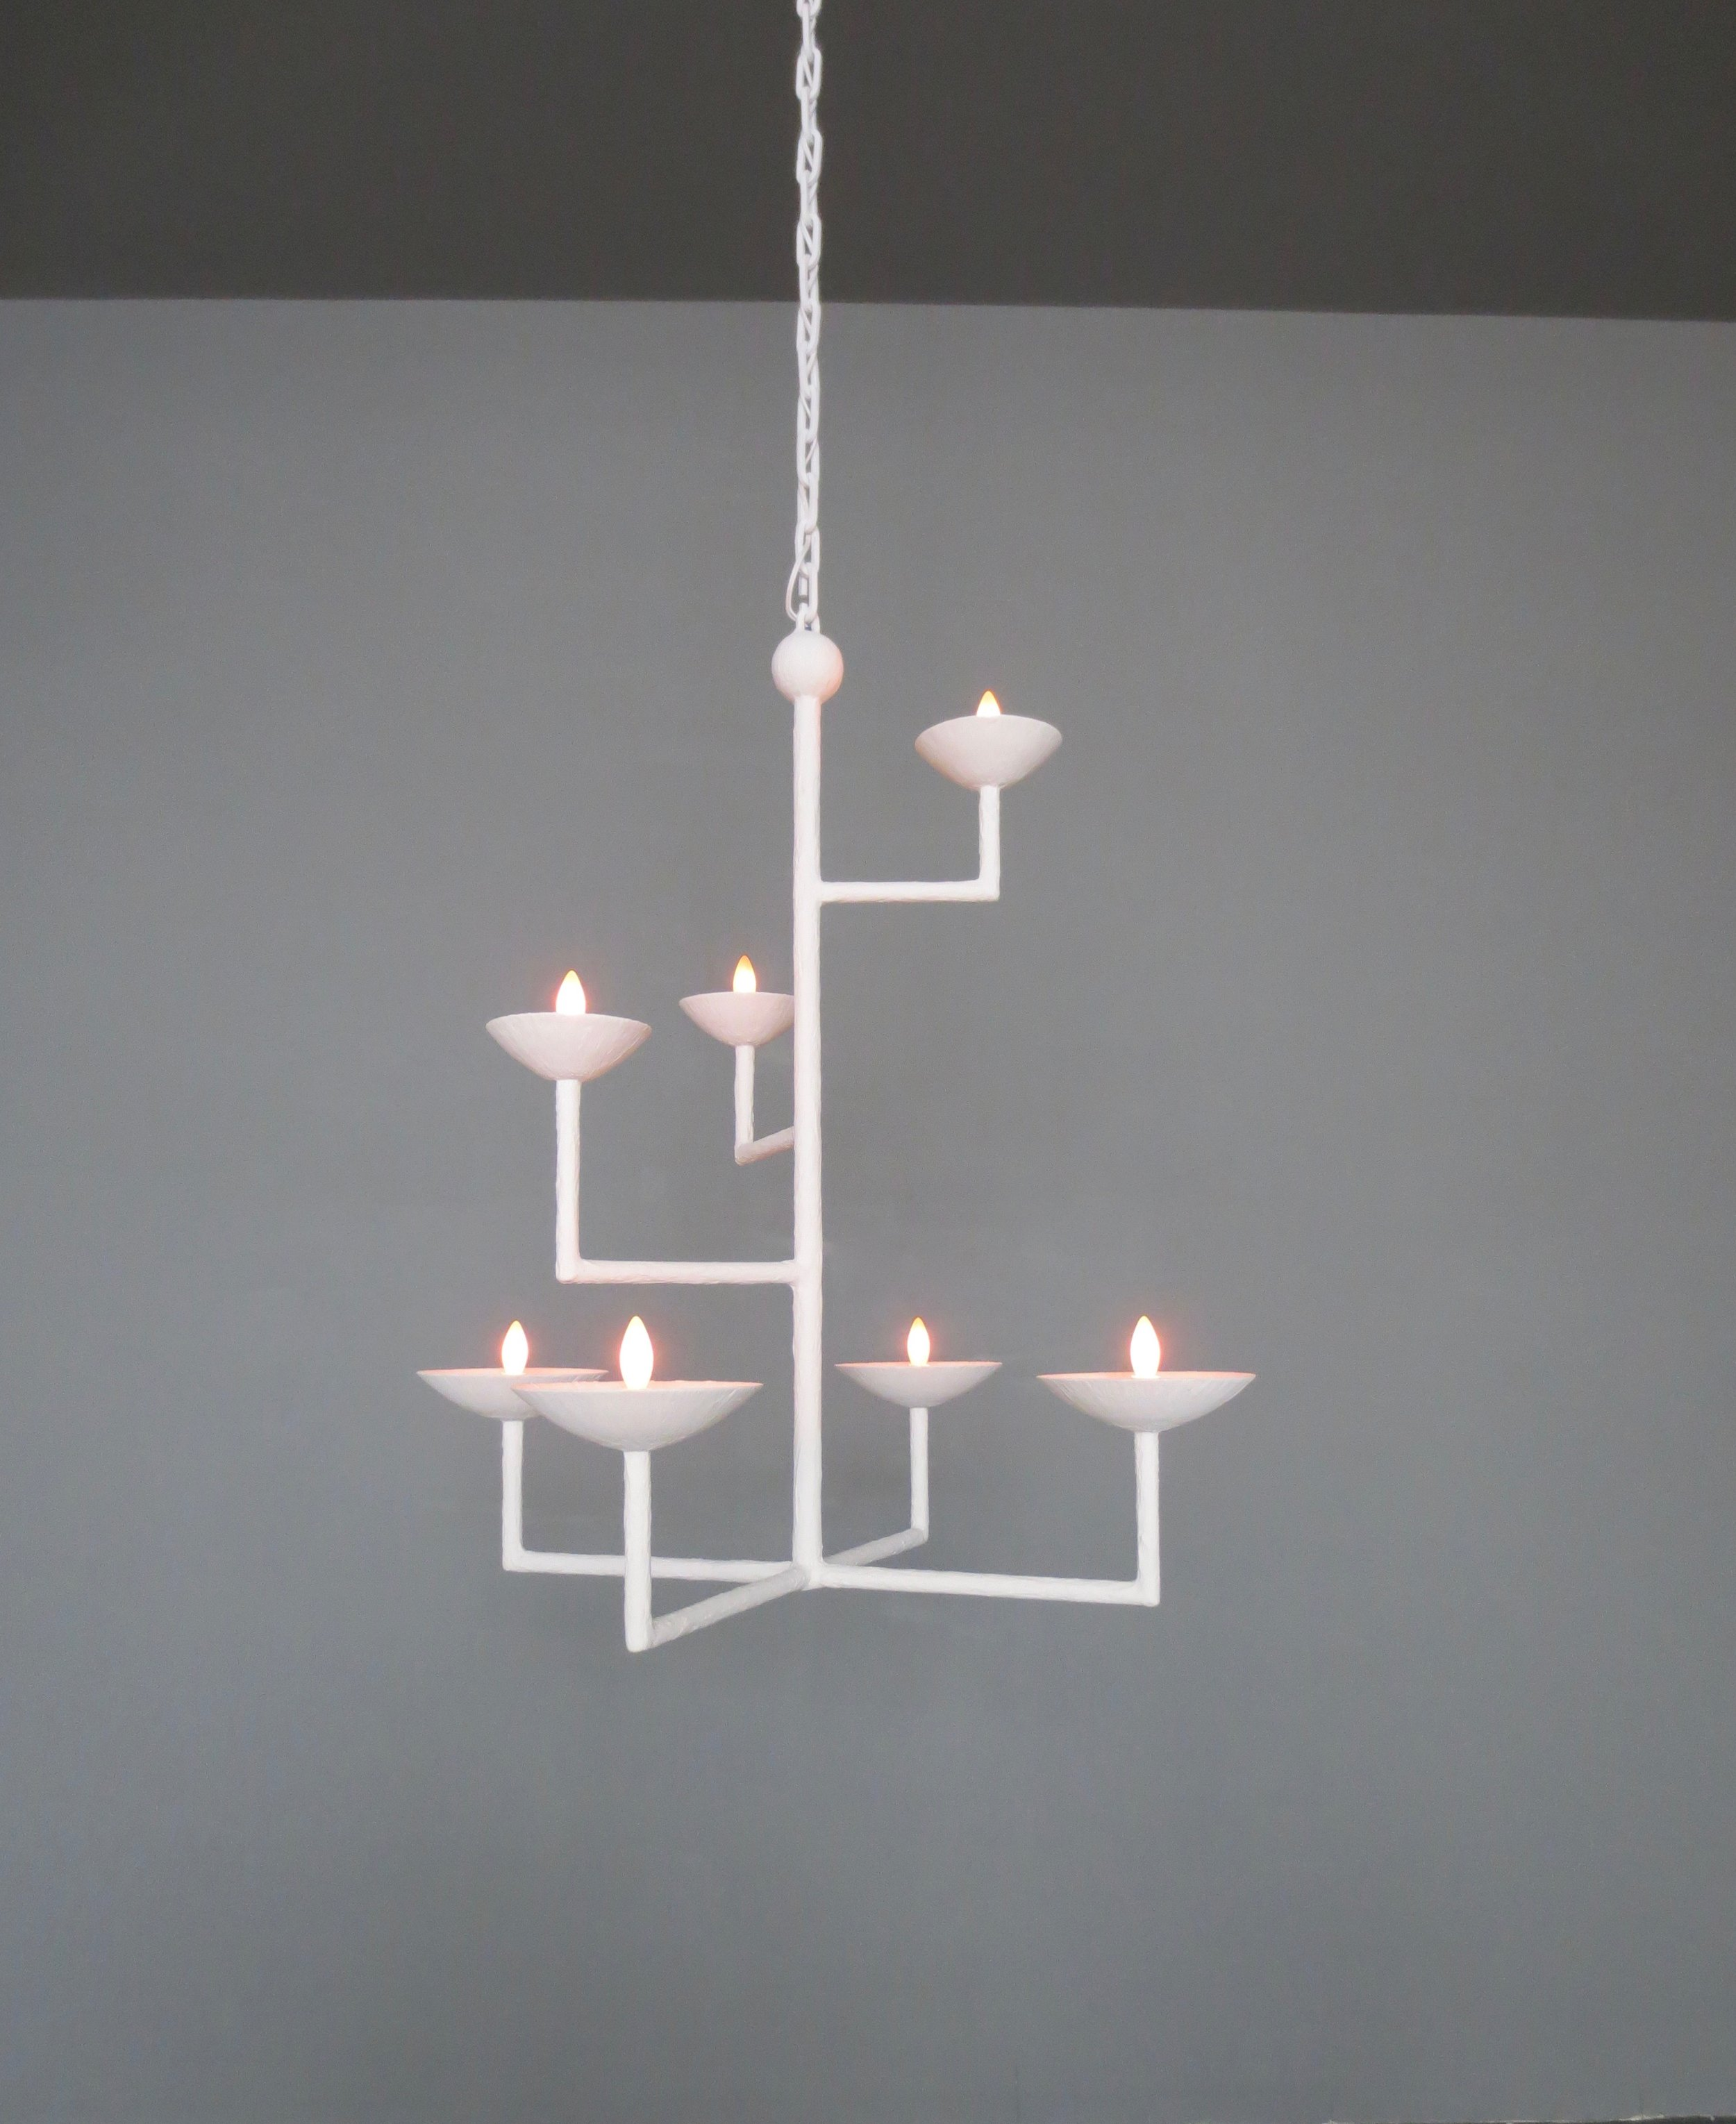 7 Cup Square Chandelier in White with Chain